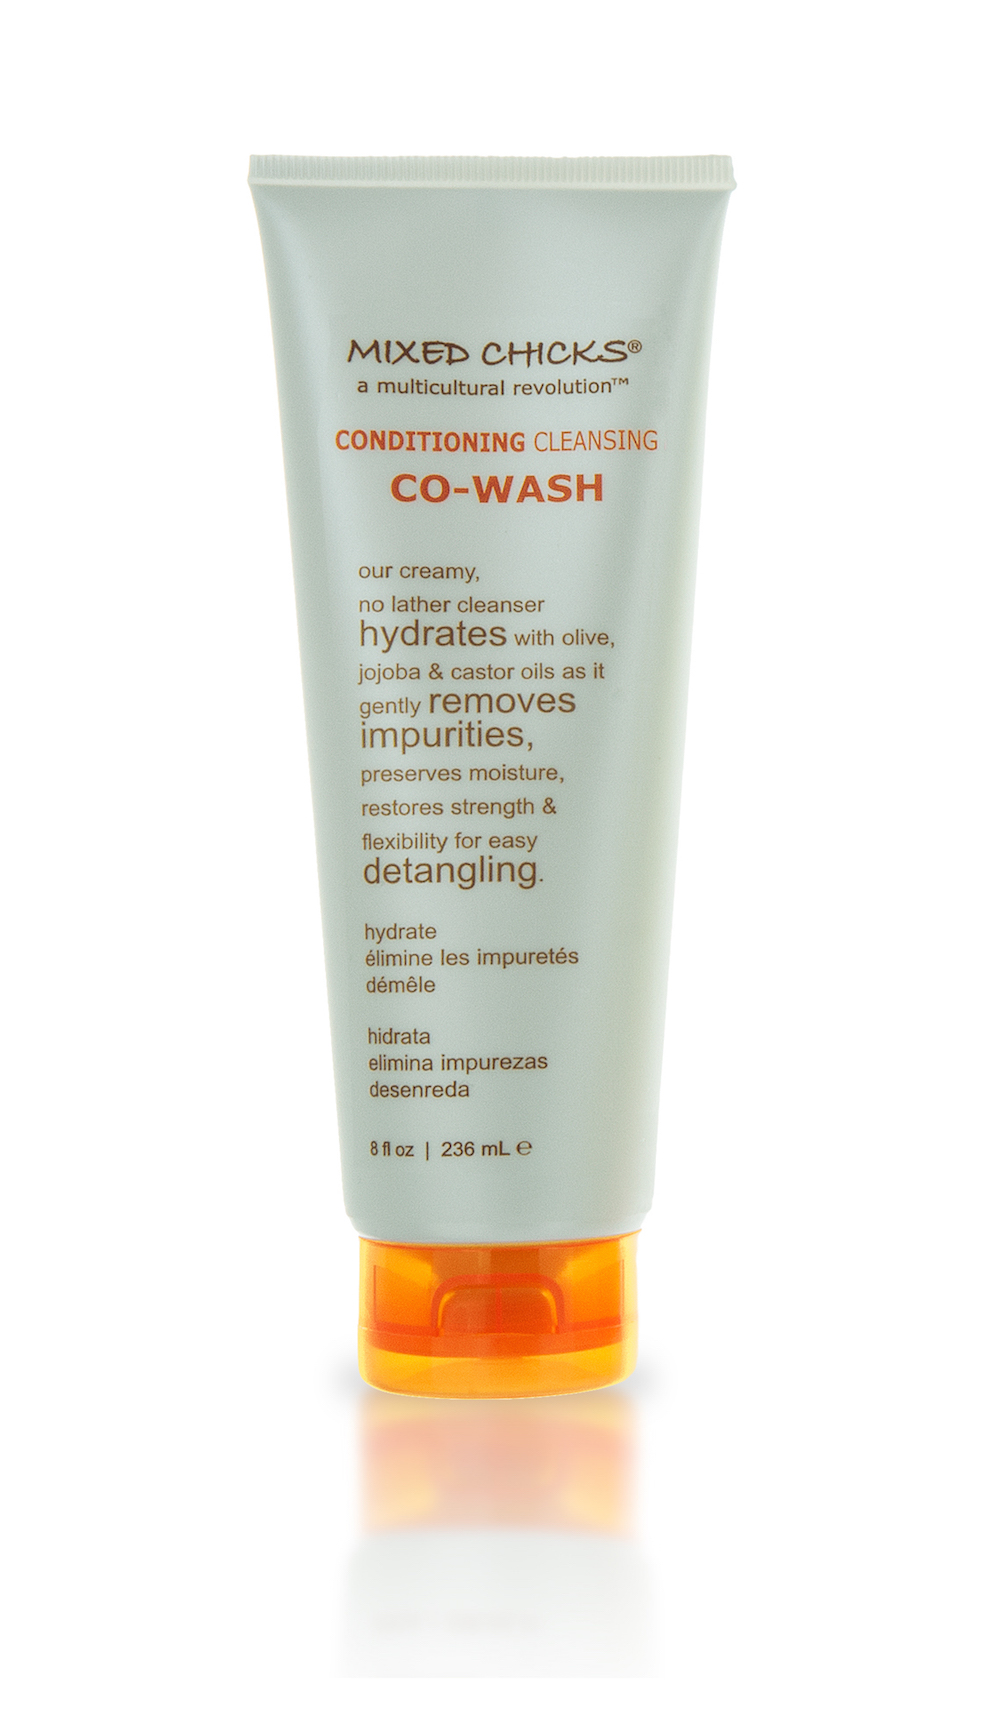 MIXED CHICKS CONDITIONING CLEANSING CO-WASH (8OZ / 236ML)